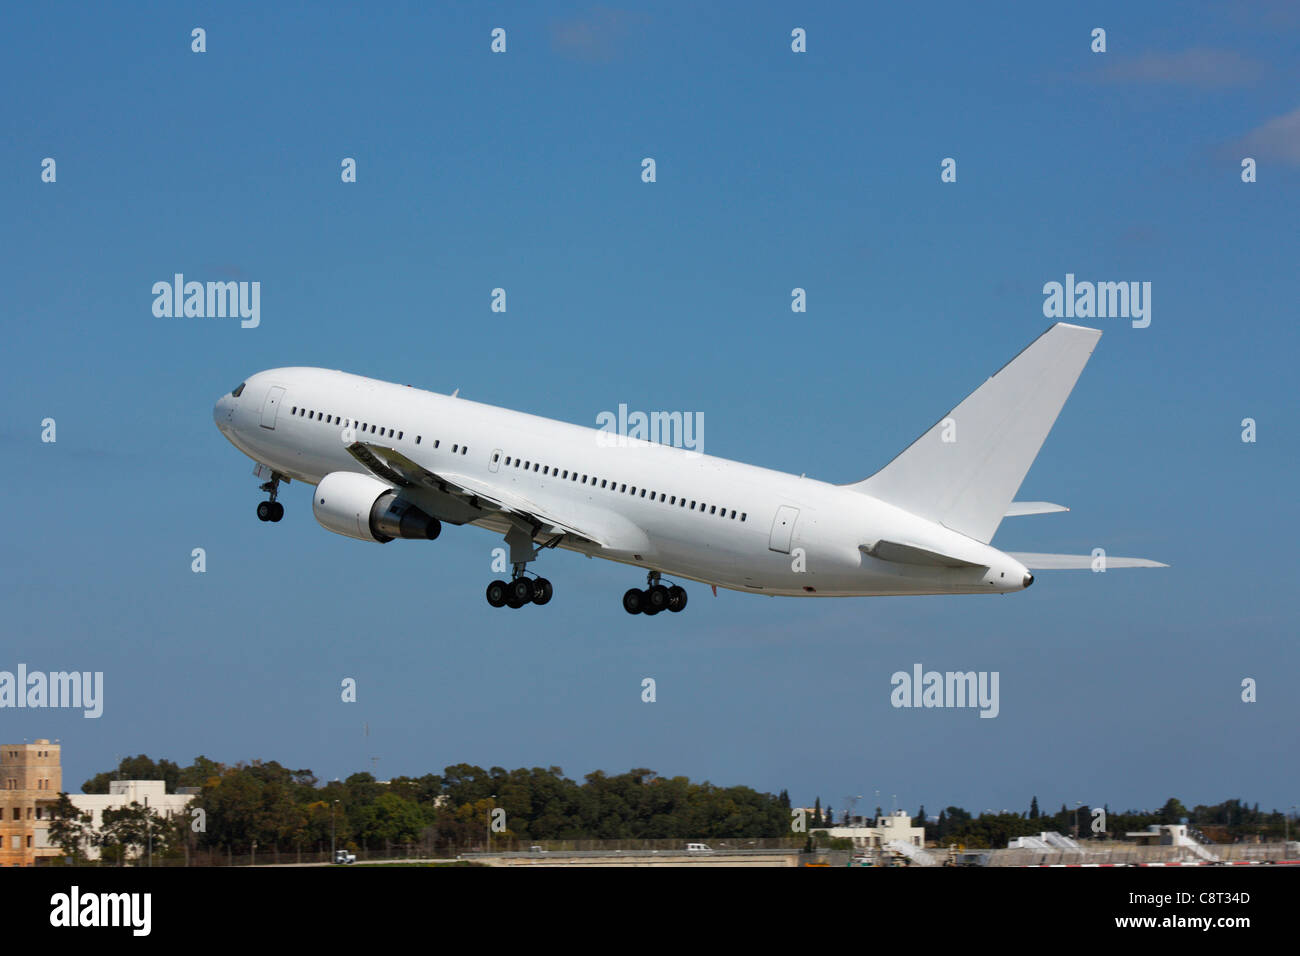 Boeing 767 large commercial passenger jet plane taking off against a clear blue sky. No livery and proprietary details - Stock Image